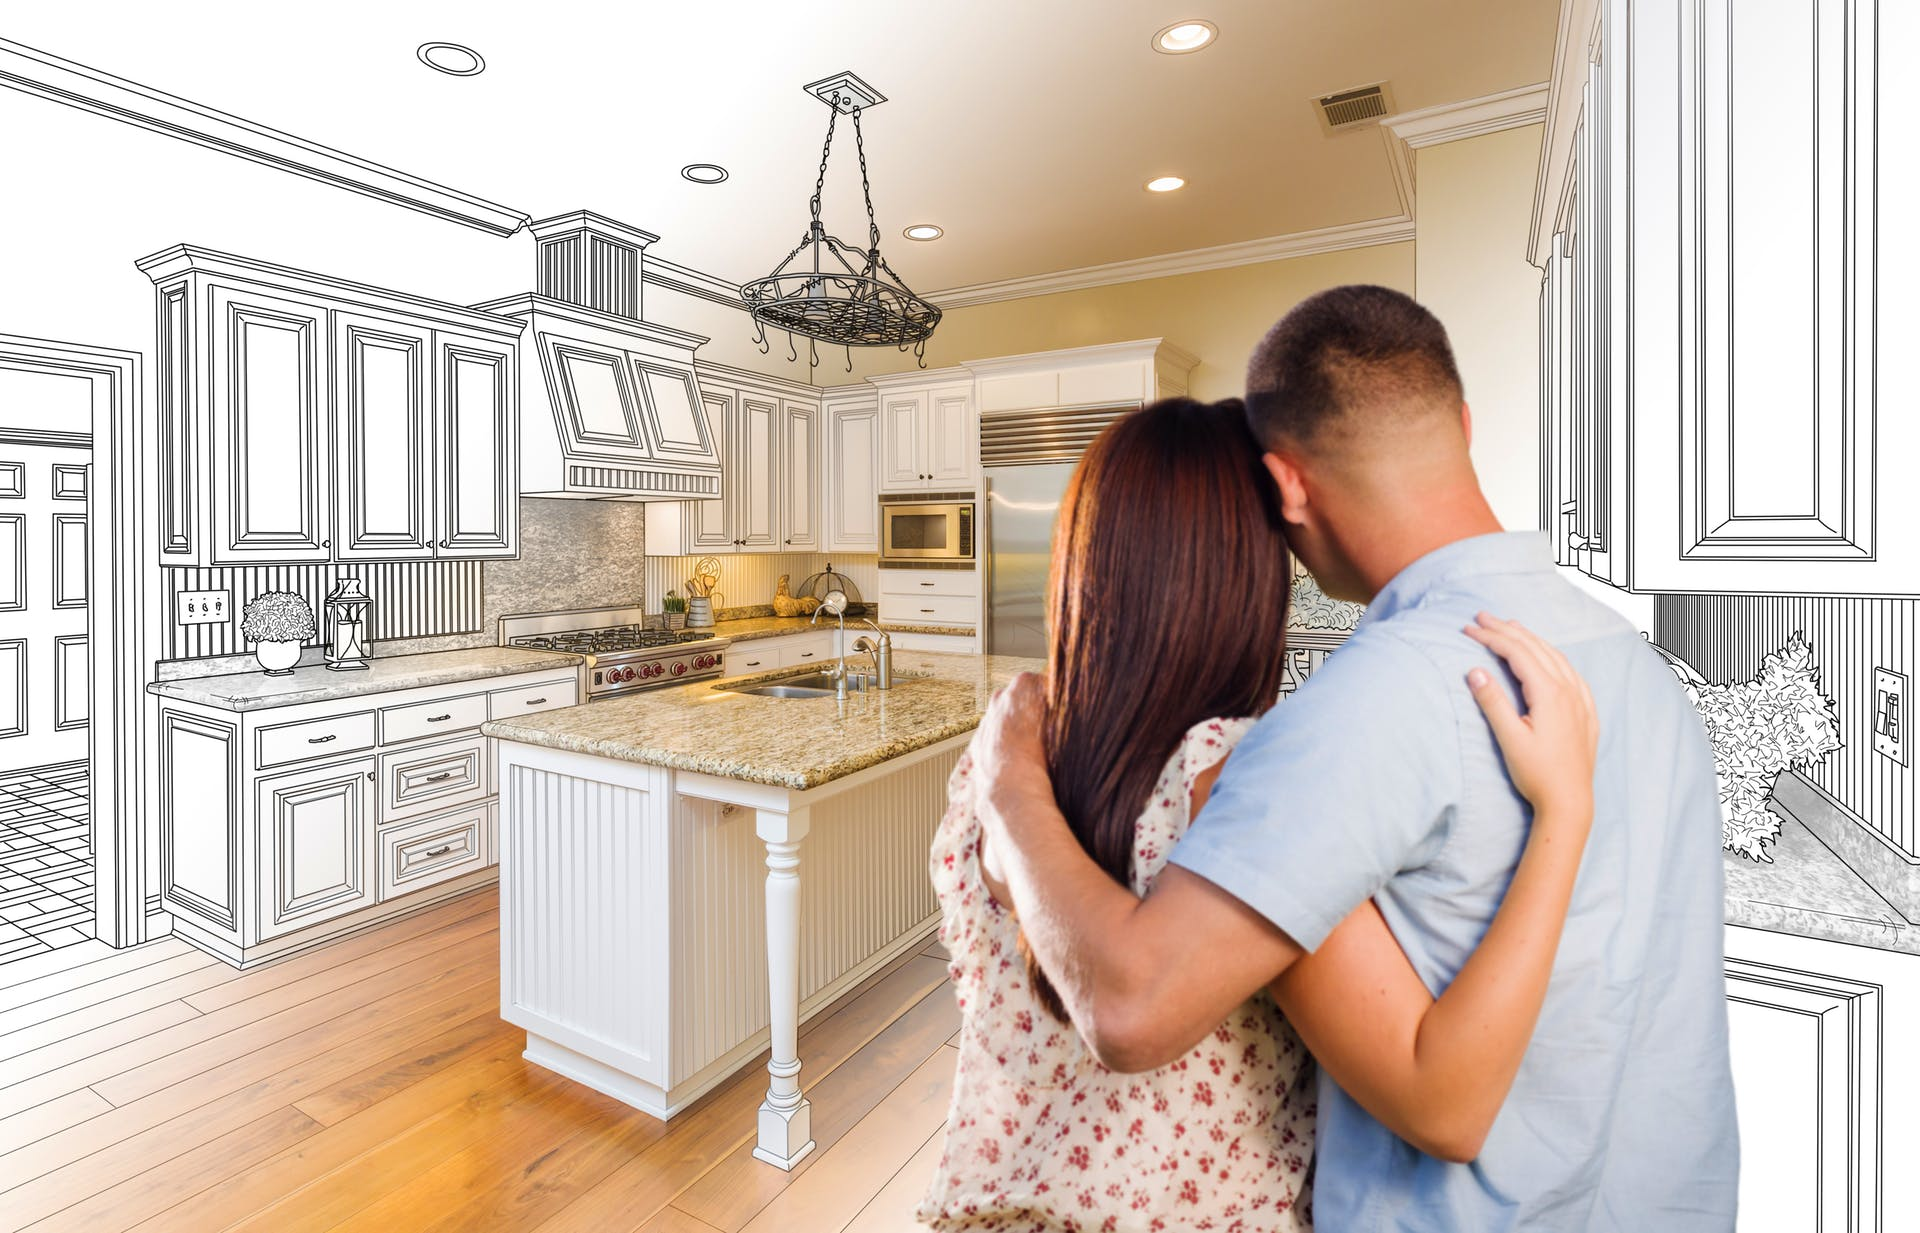 Questions About Home Improvement? Find The Answers Here!